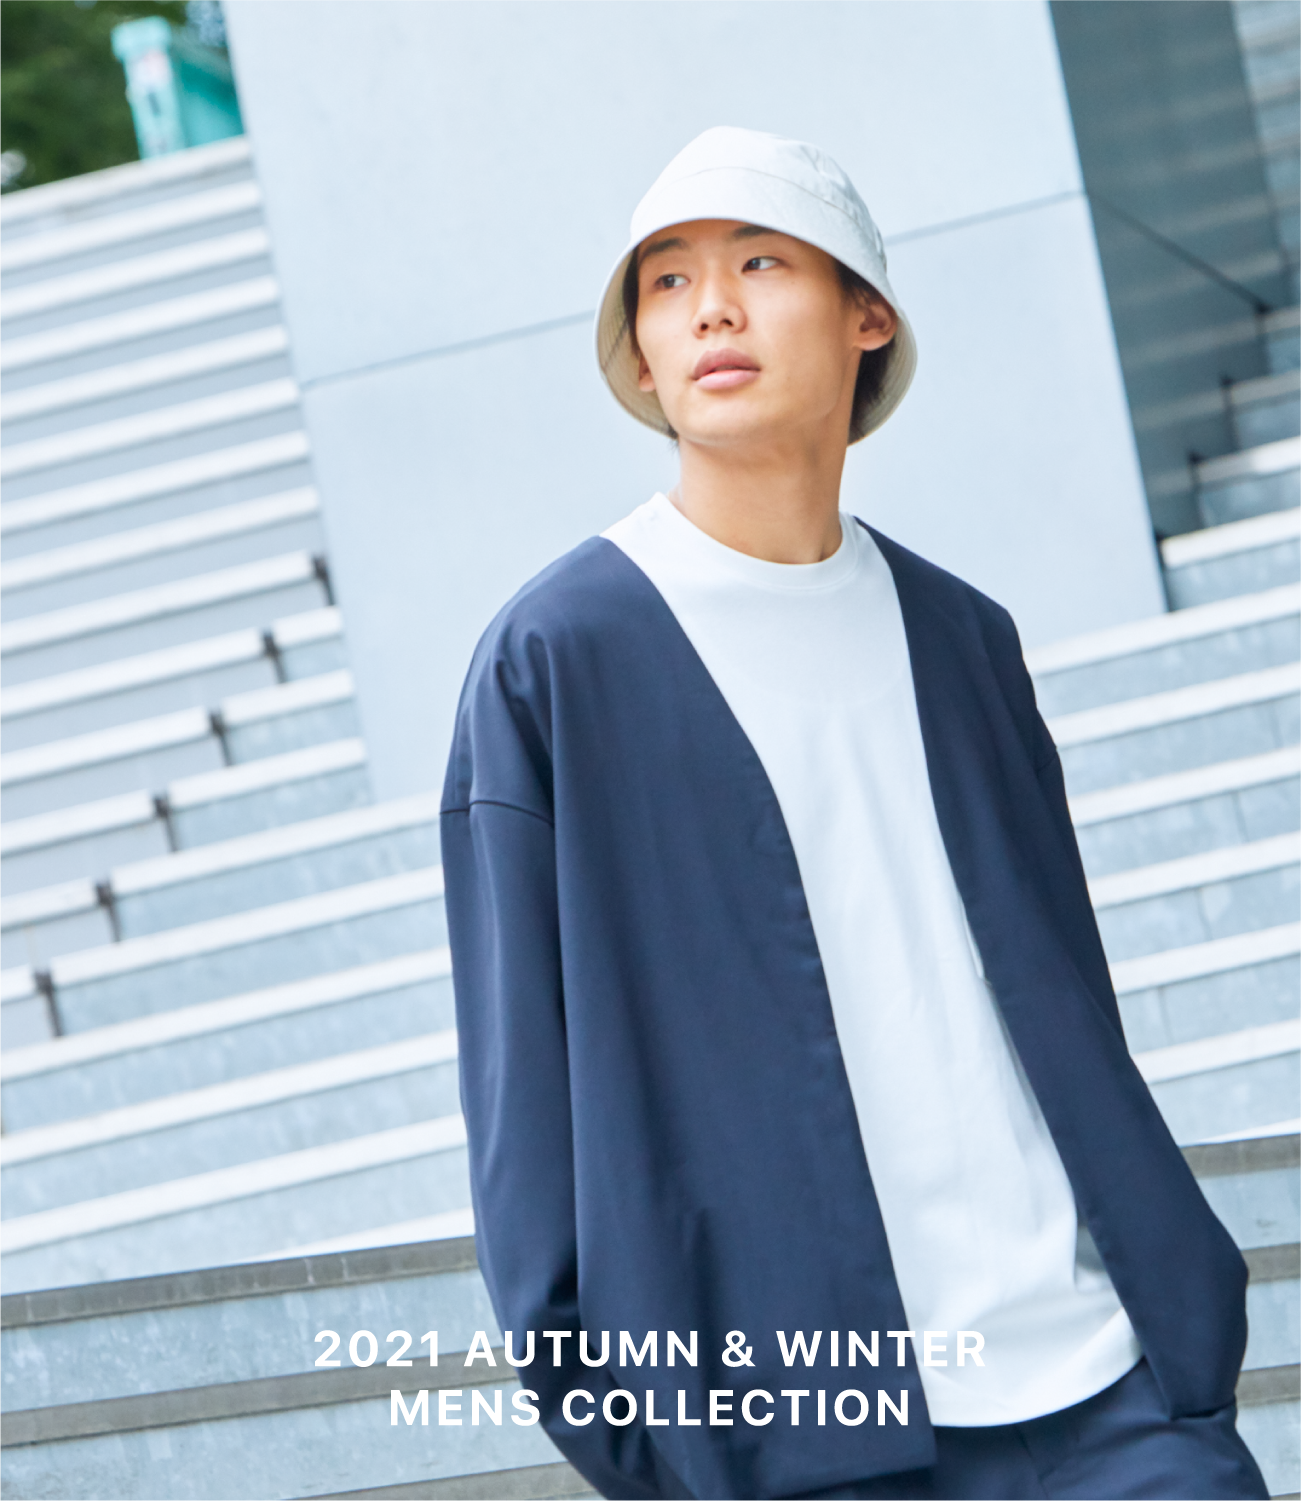 2021 AUTUMN & WINTER MENS COLLECTION